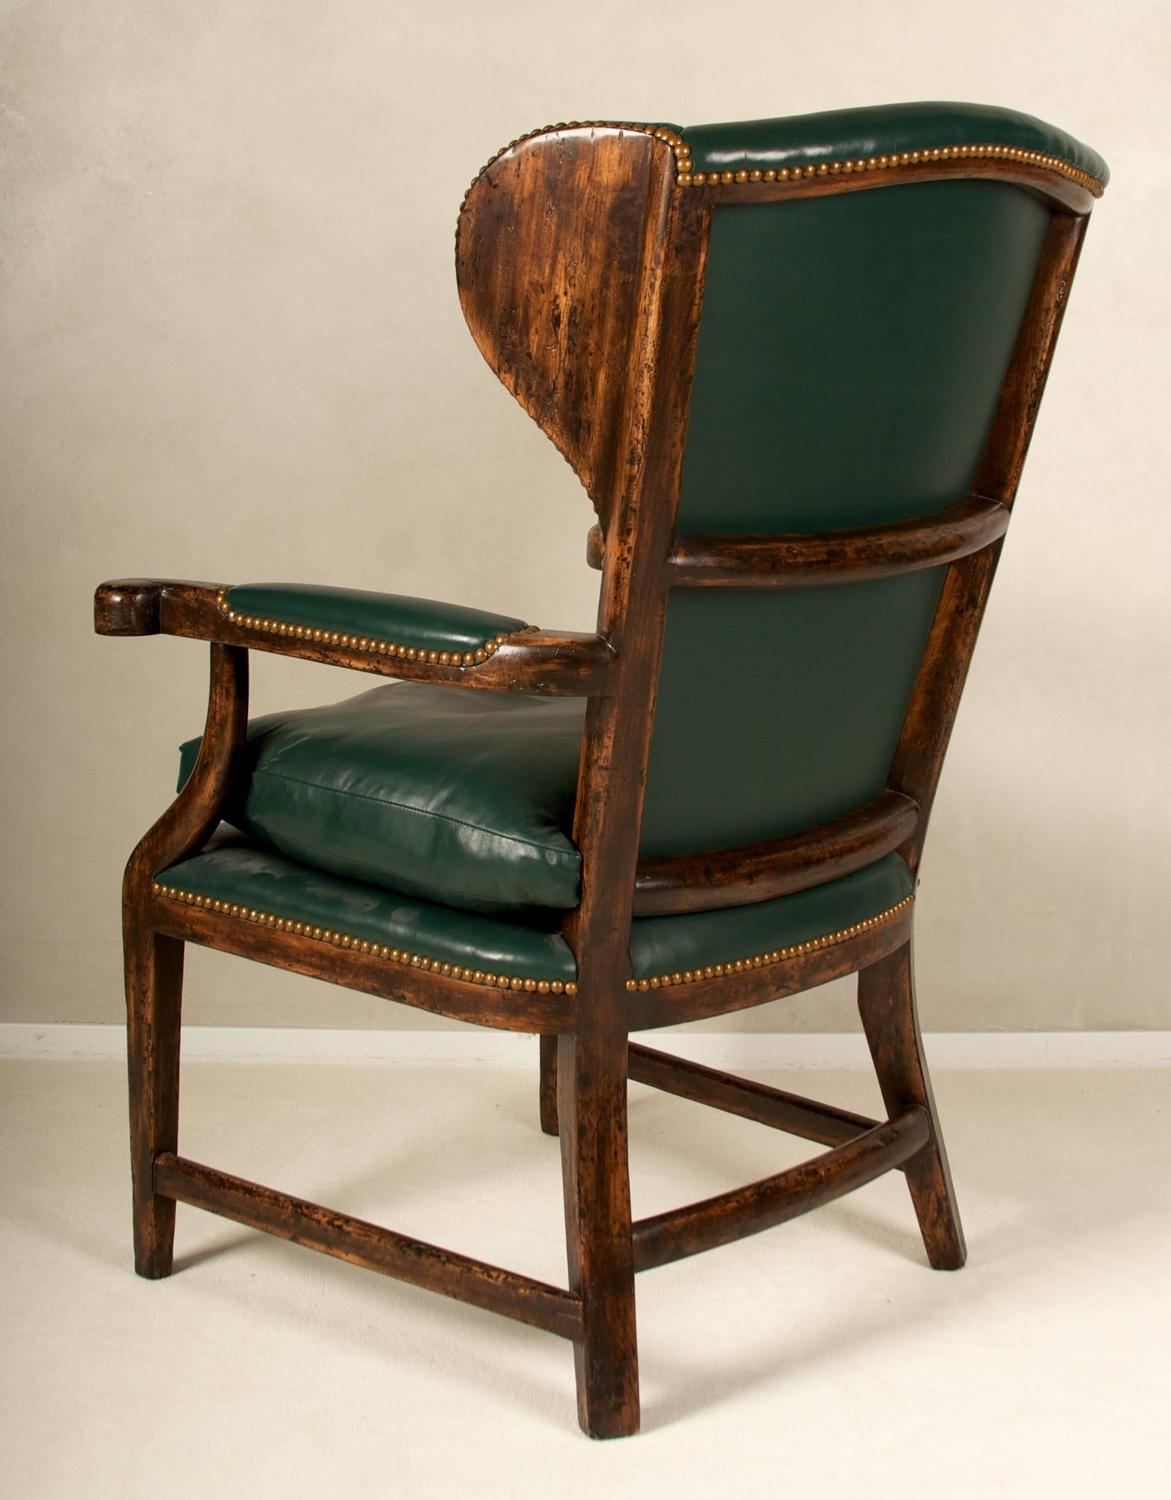 country style wingback chairs beach chair with footrest and canopy 20th century english house for sale